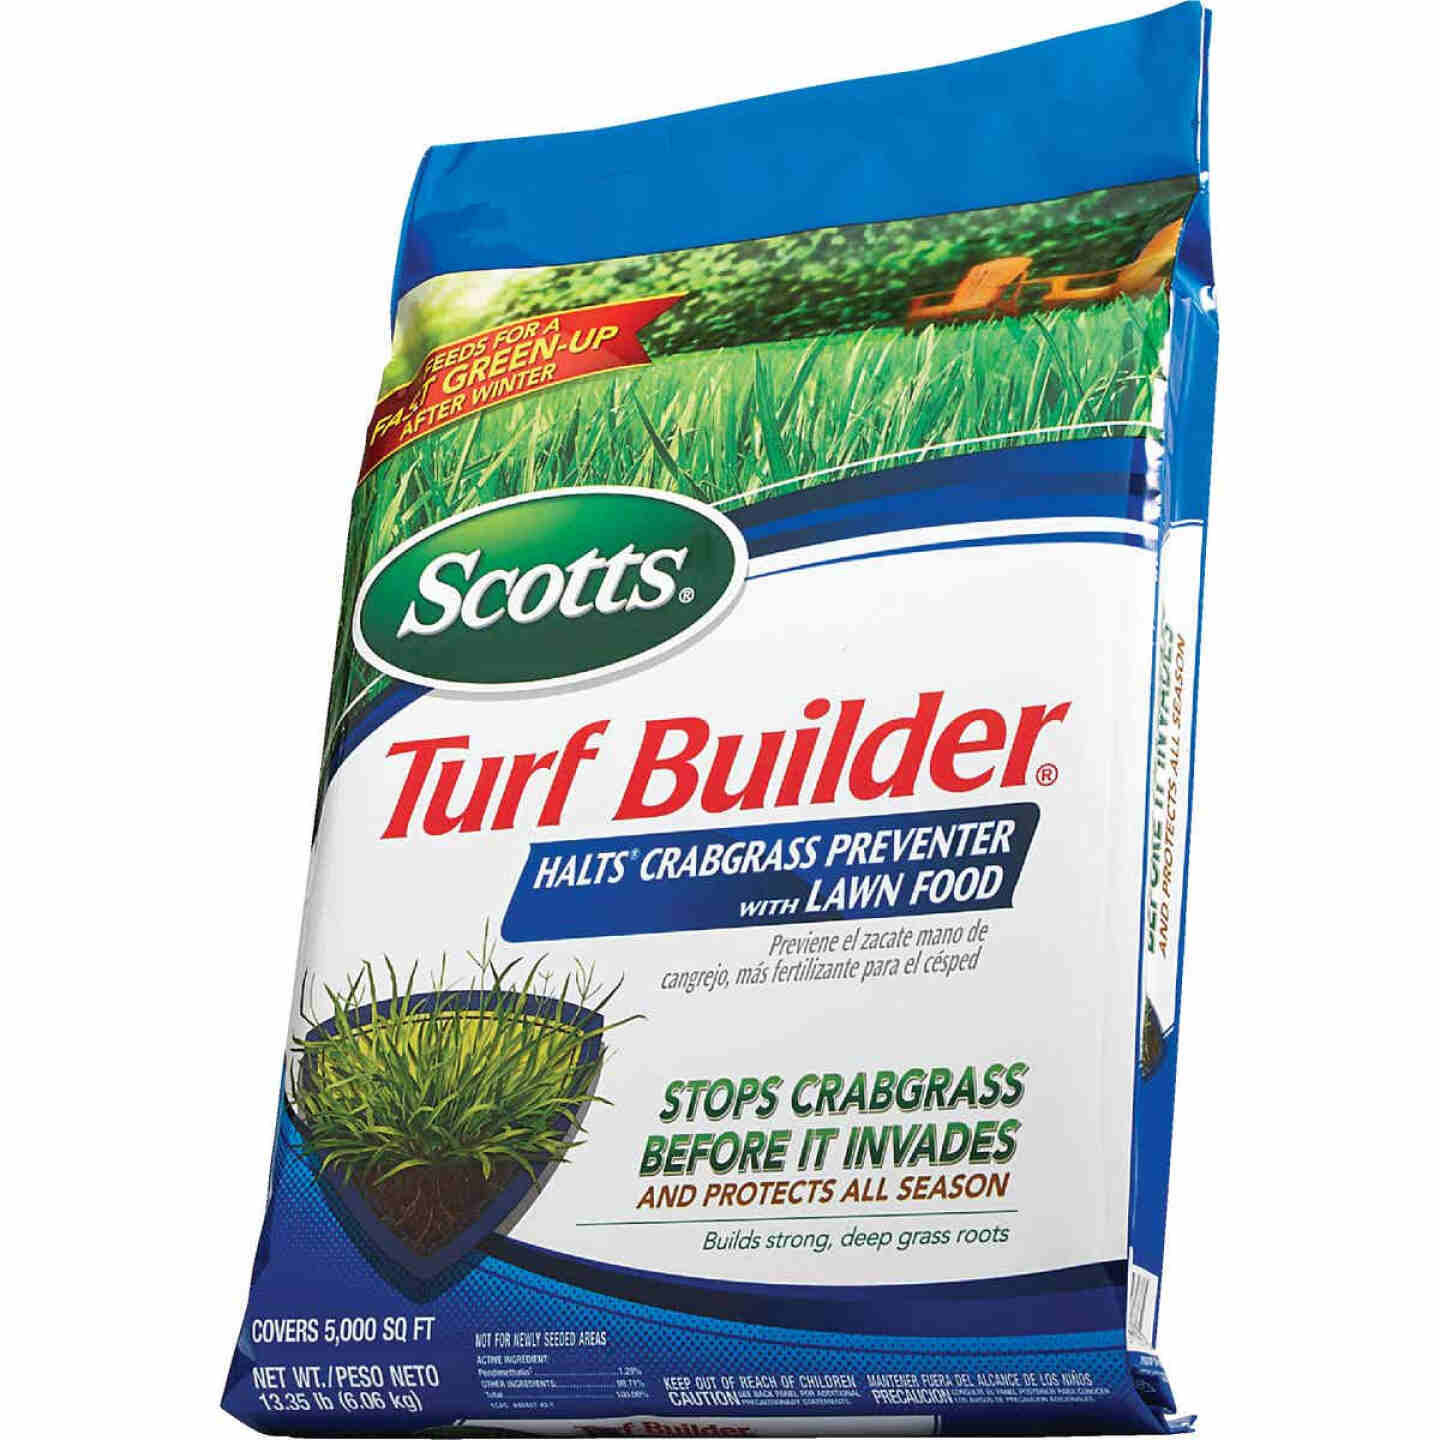 Scotts Turf Builder 13.35 Lb. 5000 Sq. Ft. 30-0-4 Lawn Fertilizer with Halts Crabgrass Preventer Image 7